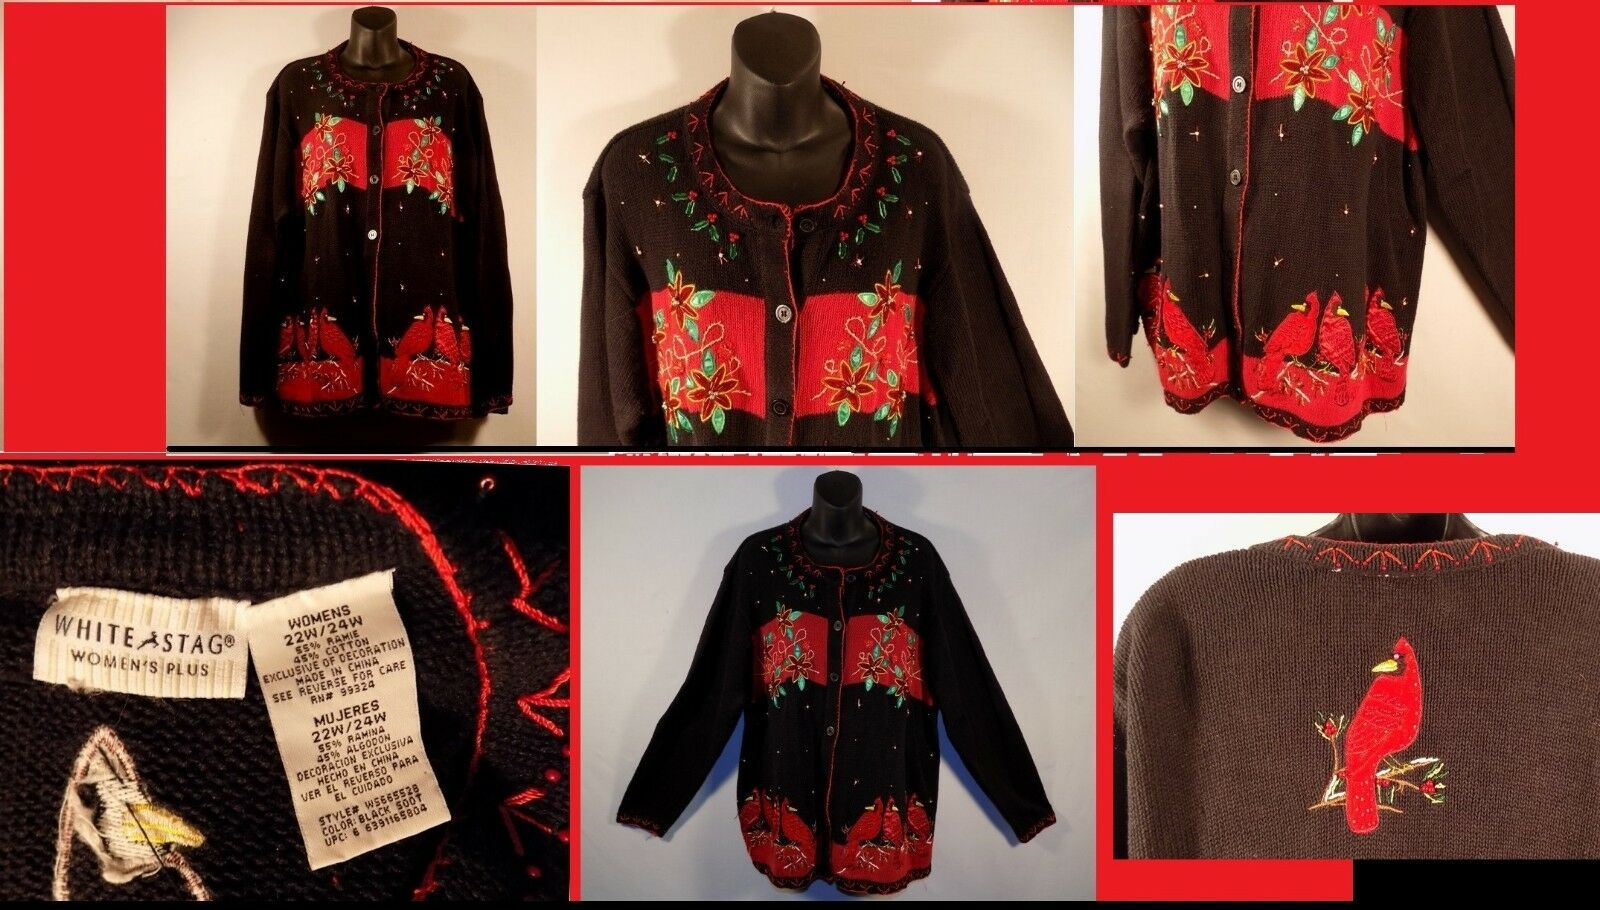 Christmas Red Cardinals 22w 24w Sweater Beaded Sequins Sequins Sequins Embellished Womens Plus 912409